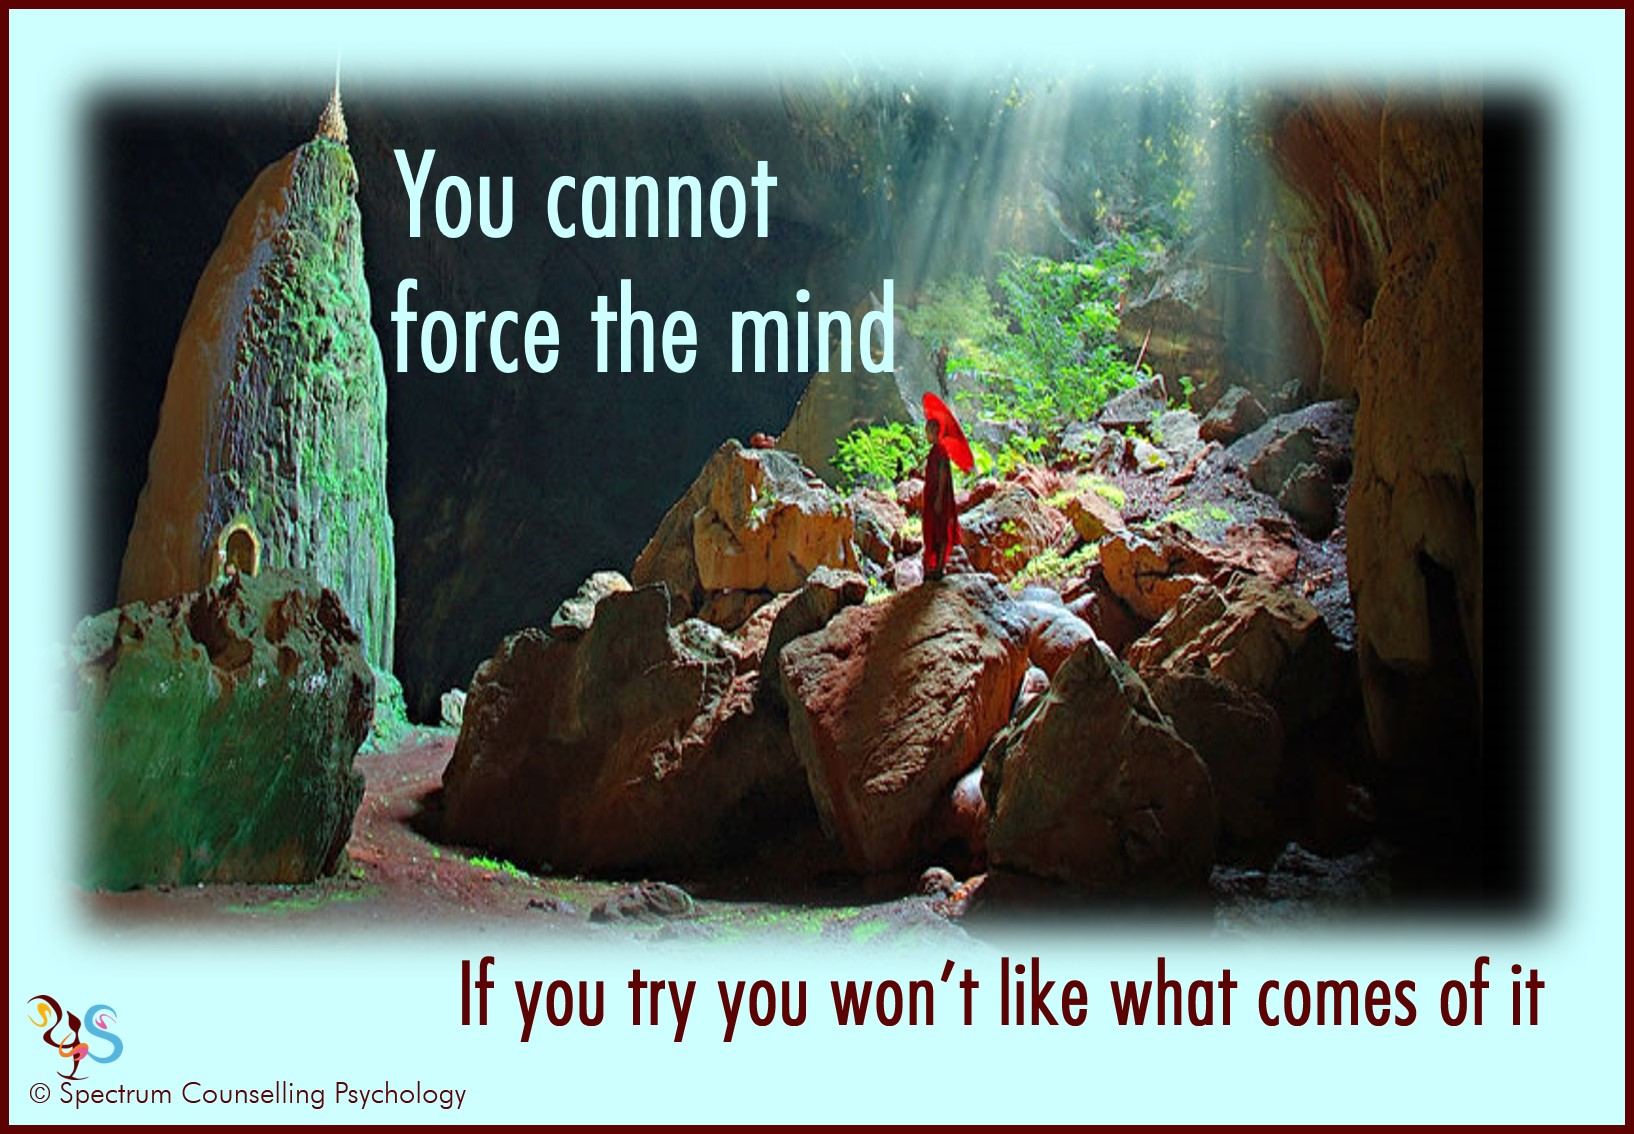 Don't force the mind (the novice)3